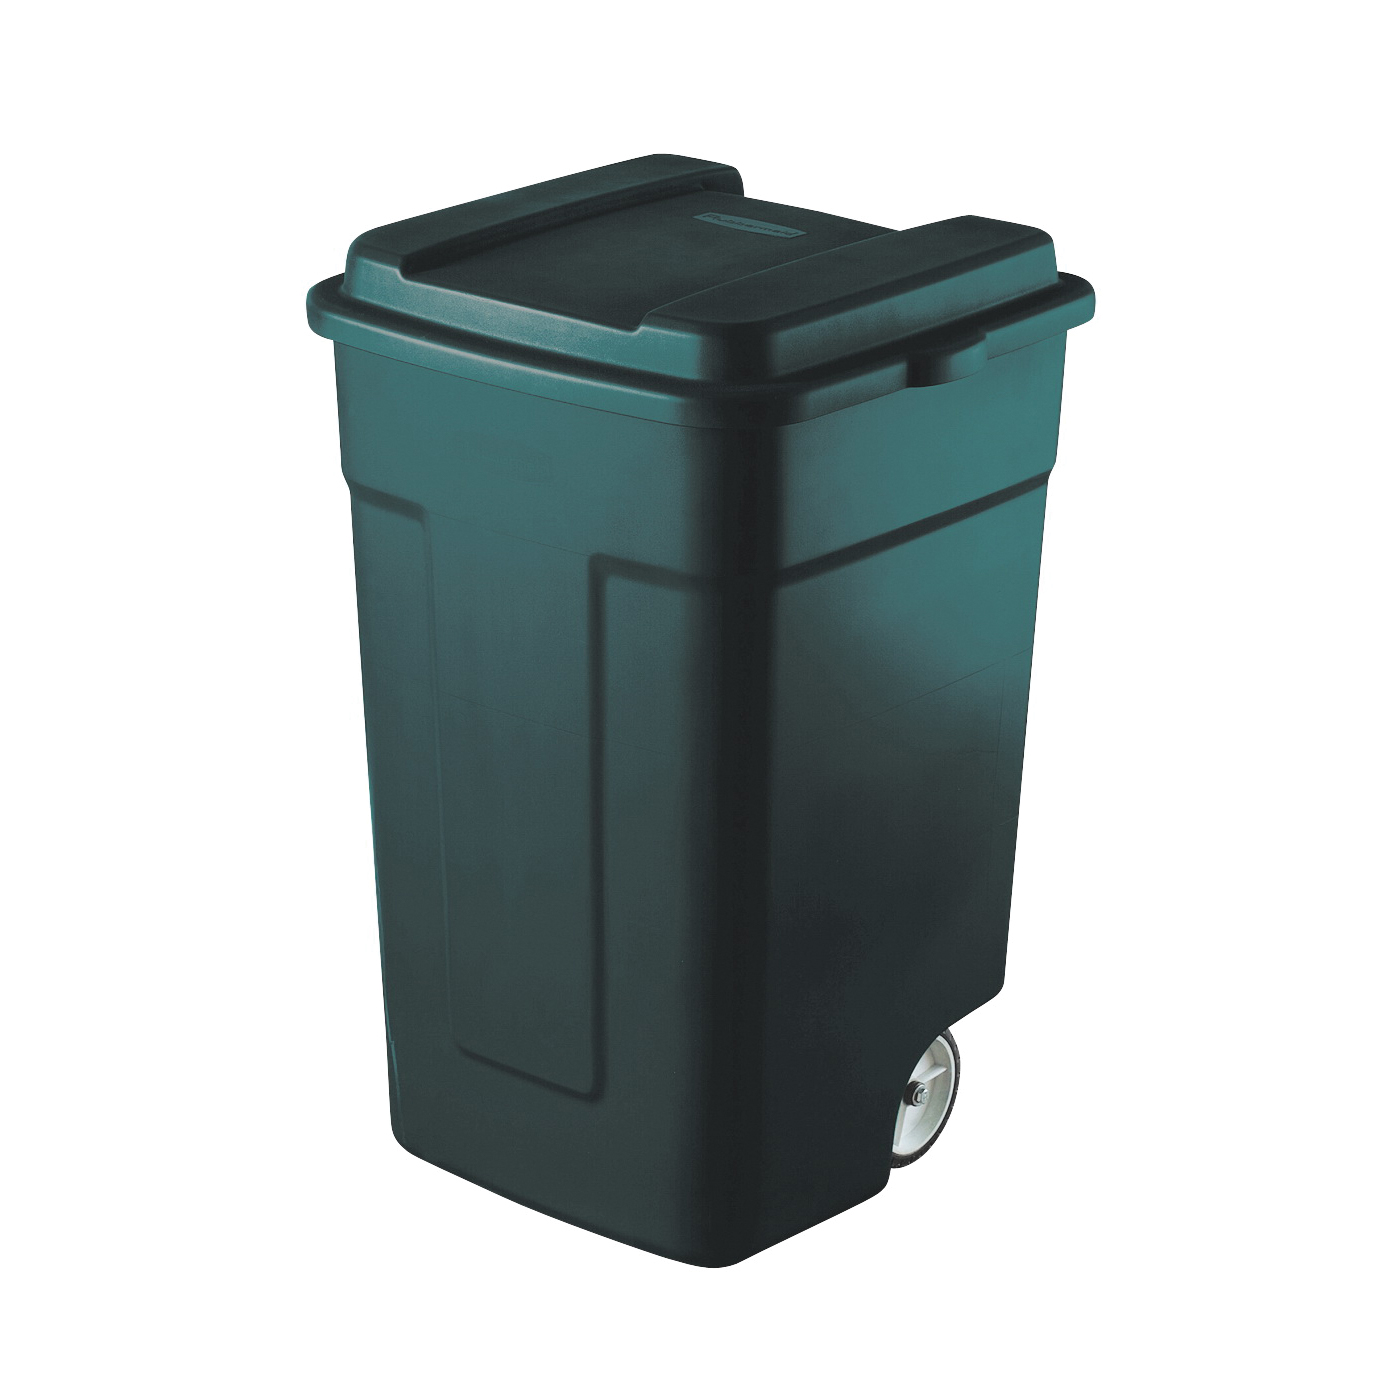 Picture of Rubbermaid FG285100EGRN Trash Can, 50 gal Capacity, Plastic, Green, Snap-Fit Lid Closure